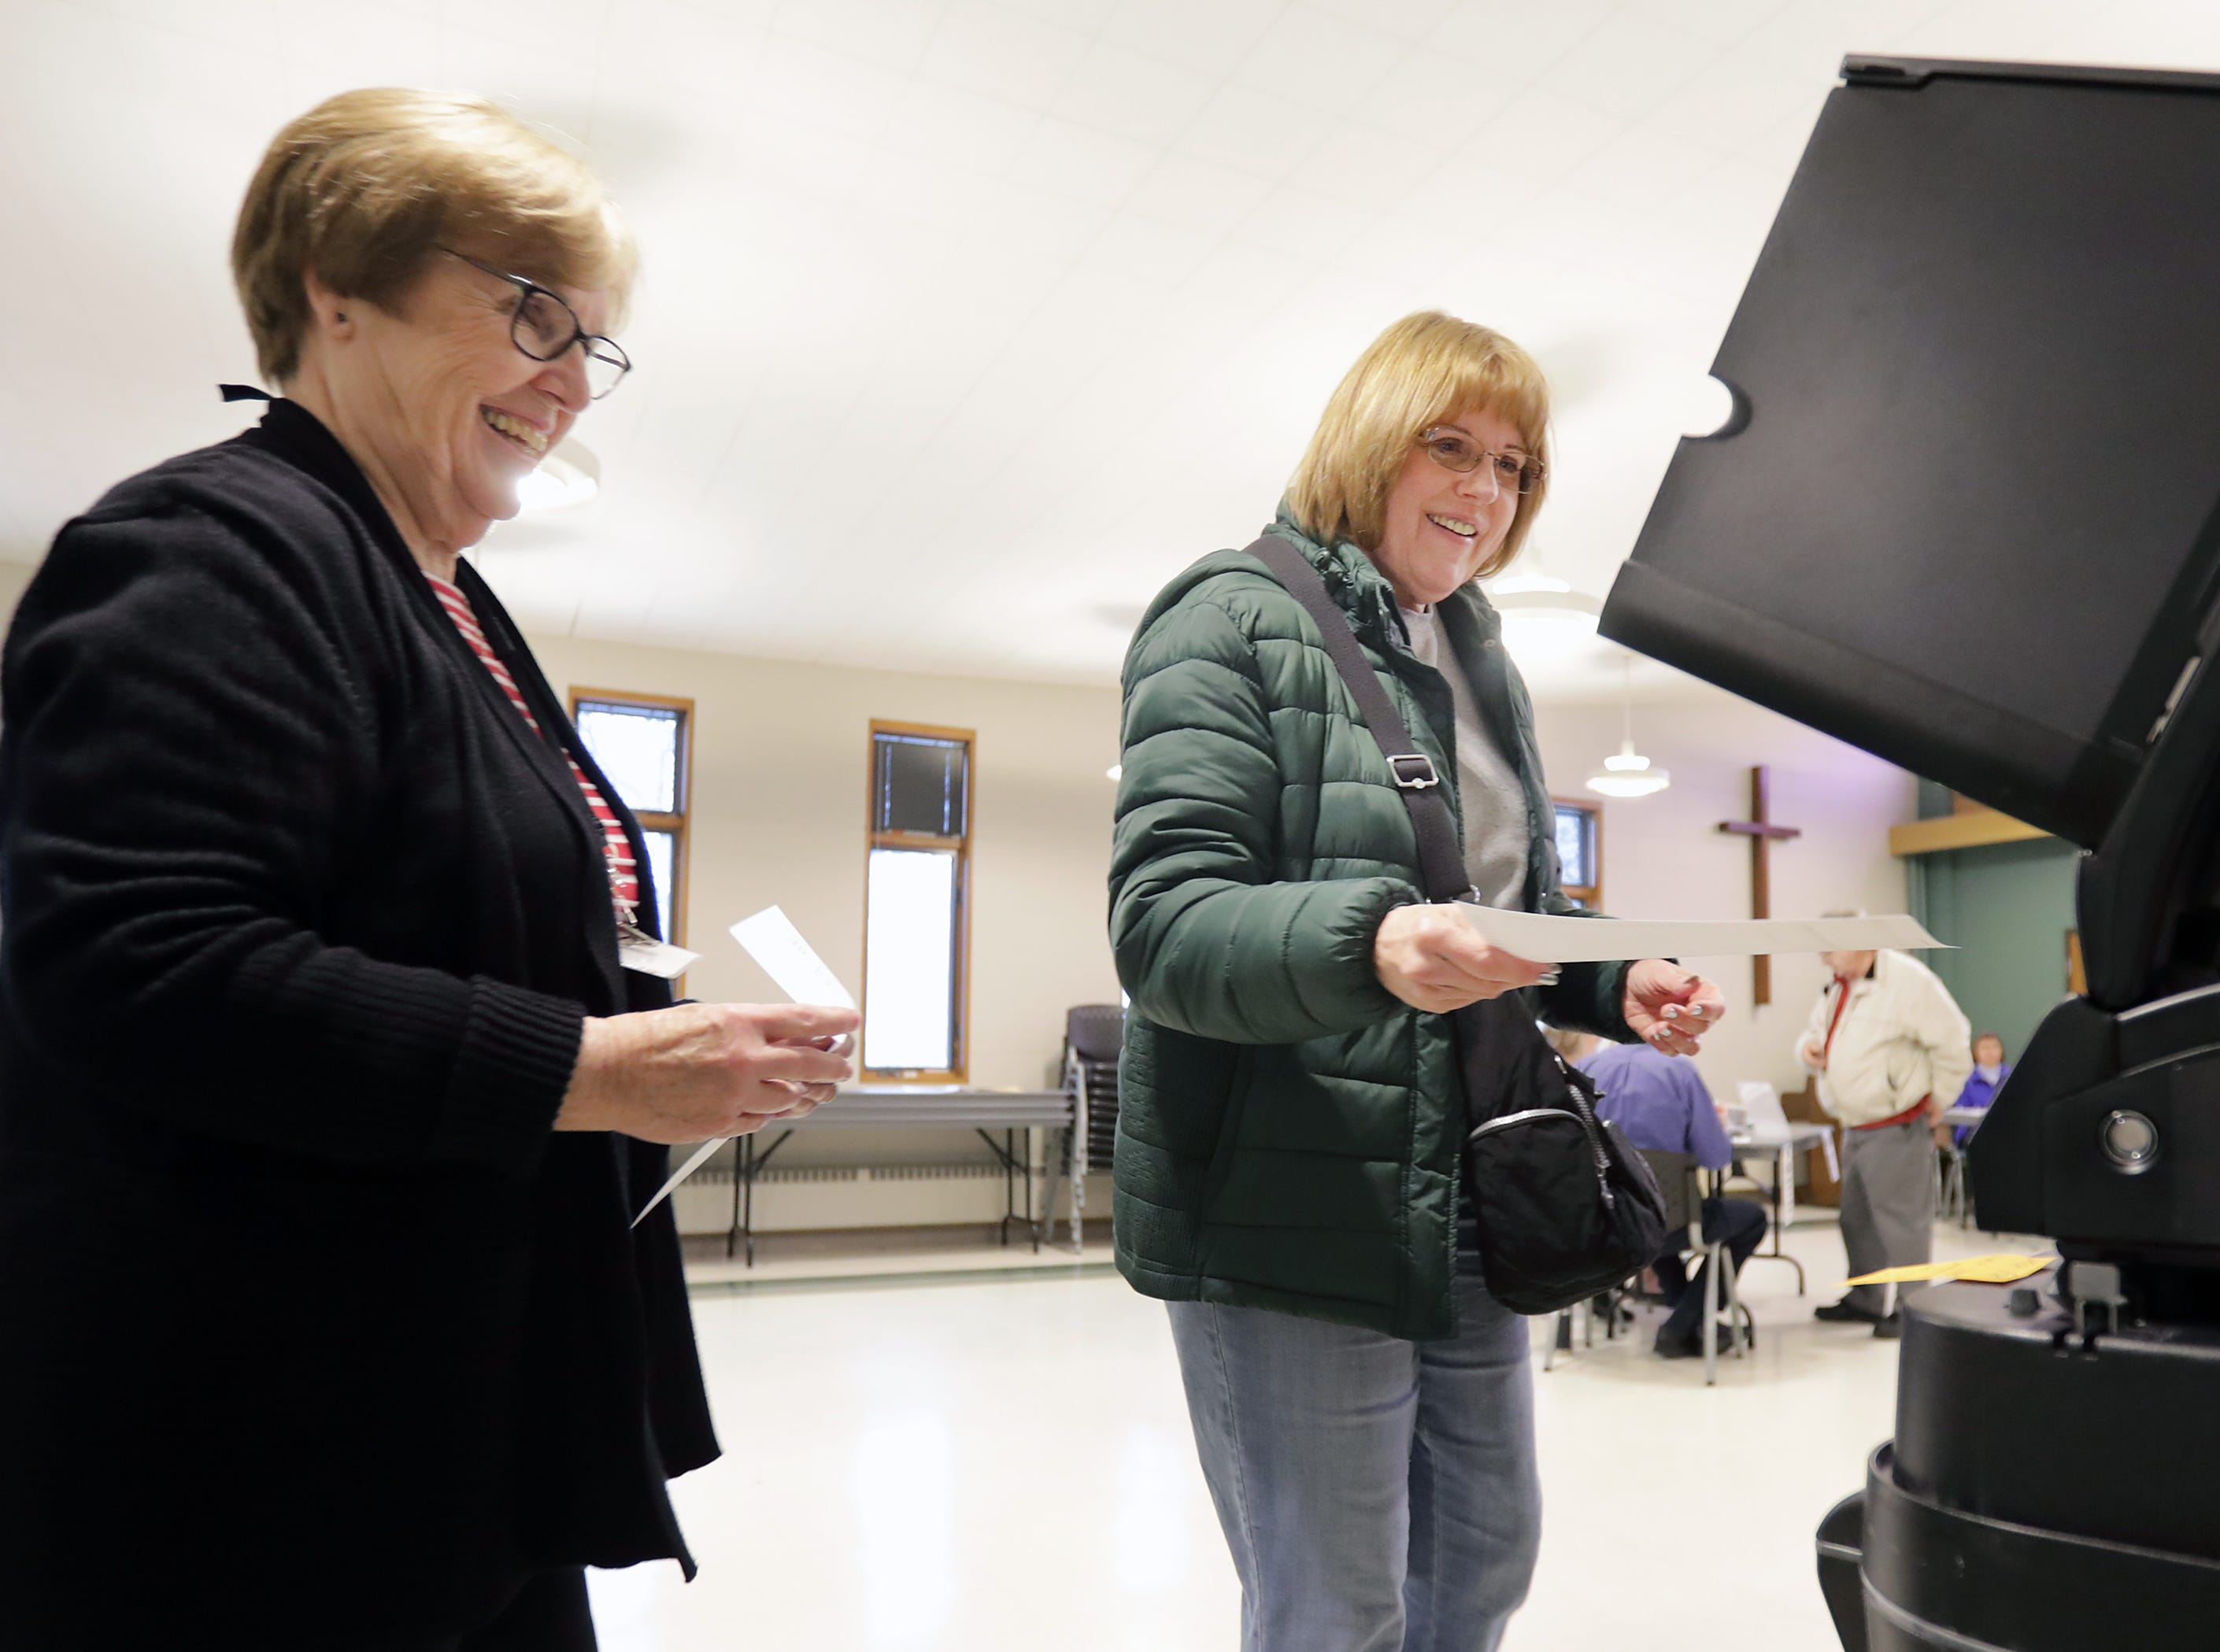 Poll worker Terri Wasco, left, helps Cheryl Pagel submit her ballot as voters head to the polls at Peace Lutheran Church on Tuesday, April 2, 2019, in Neenah, Wis.